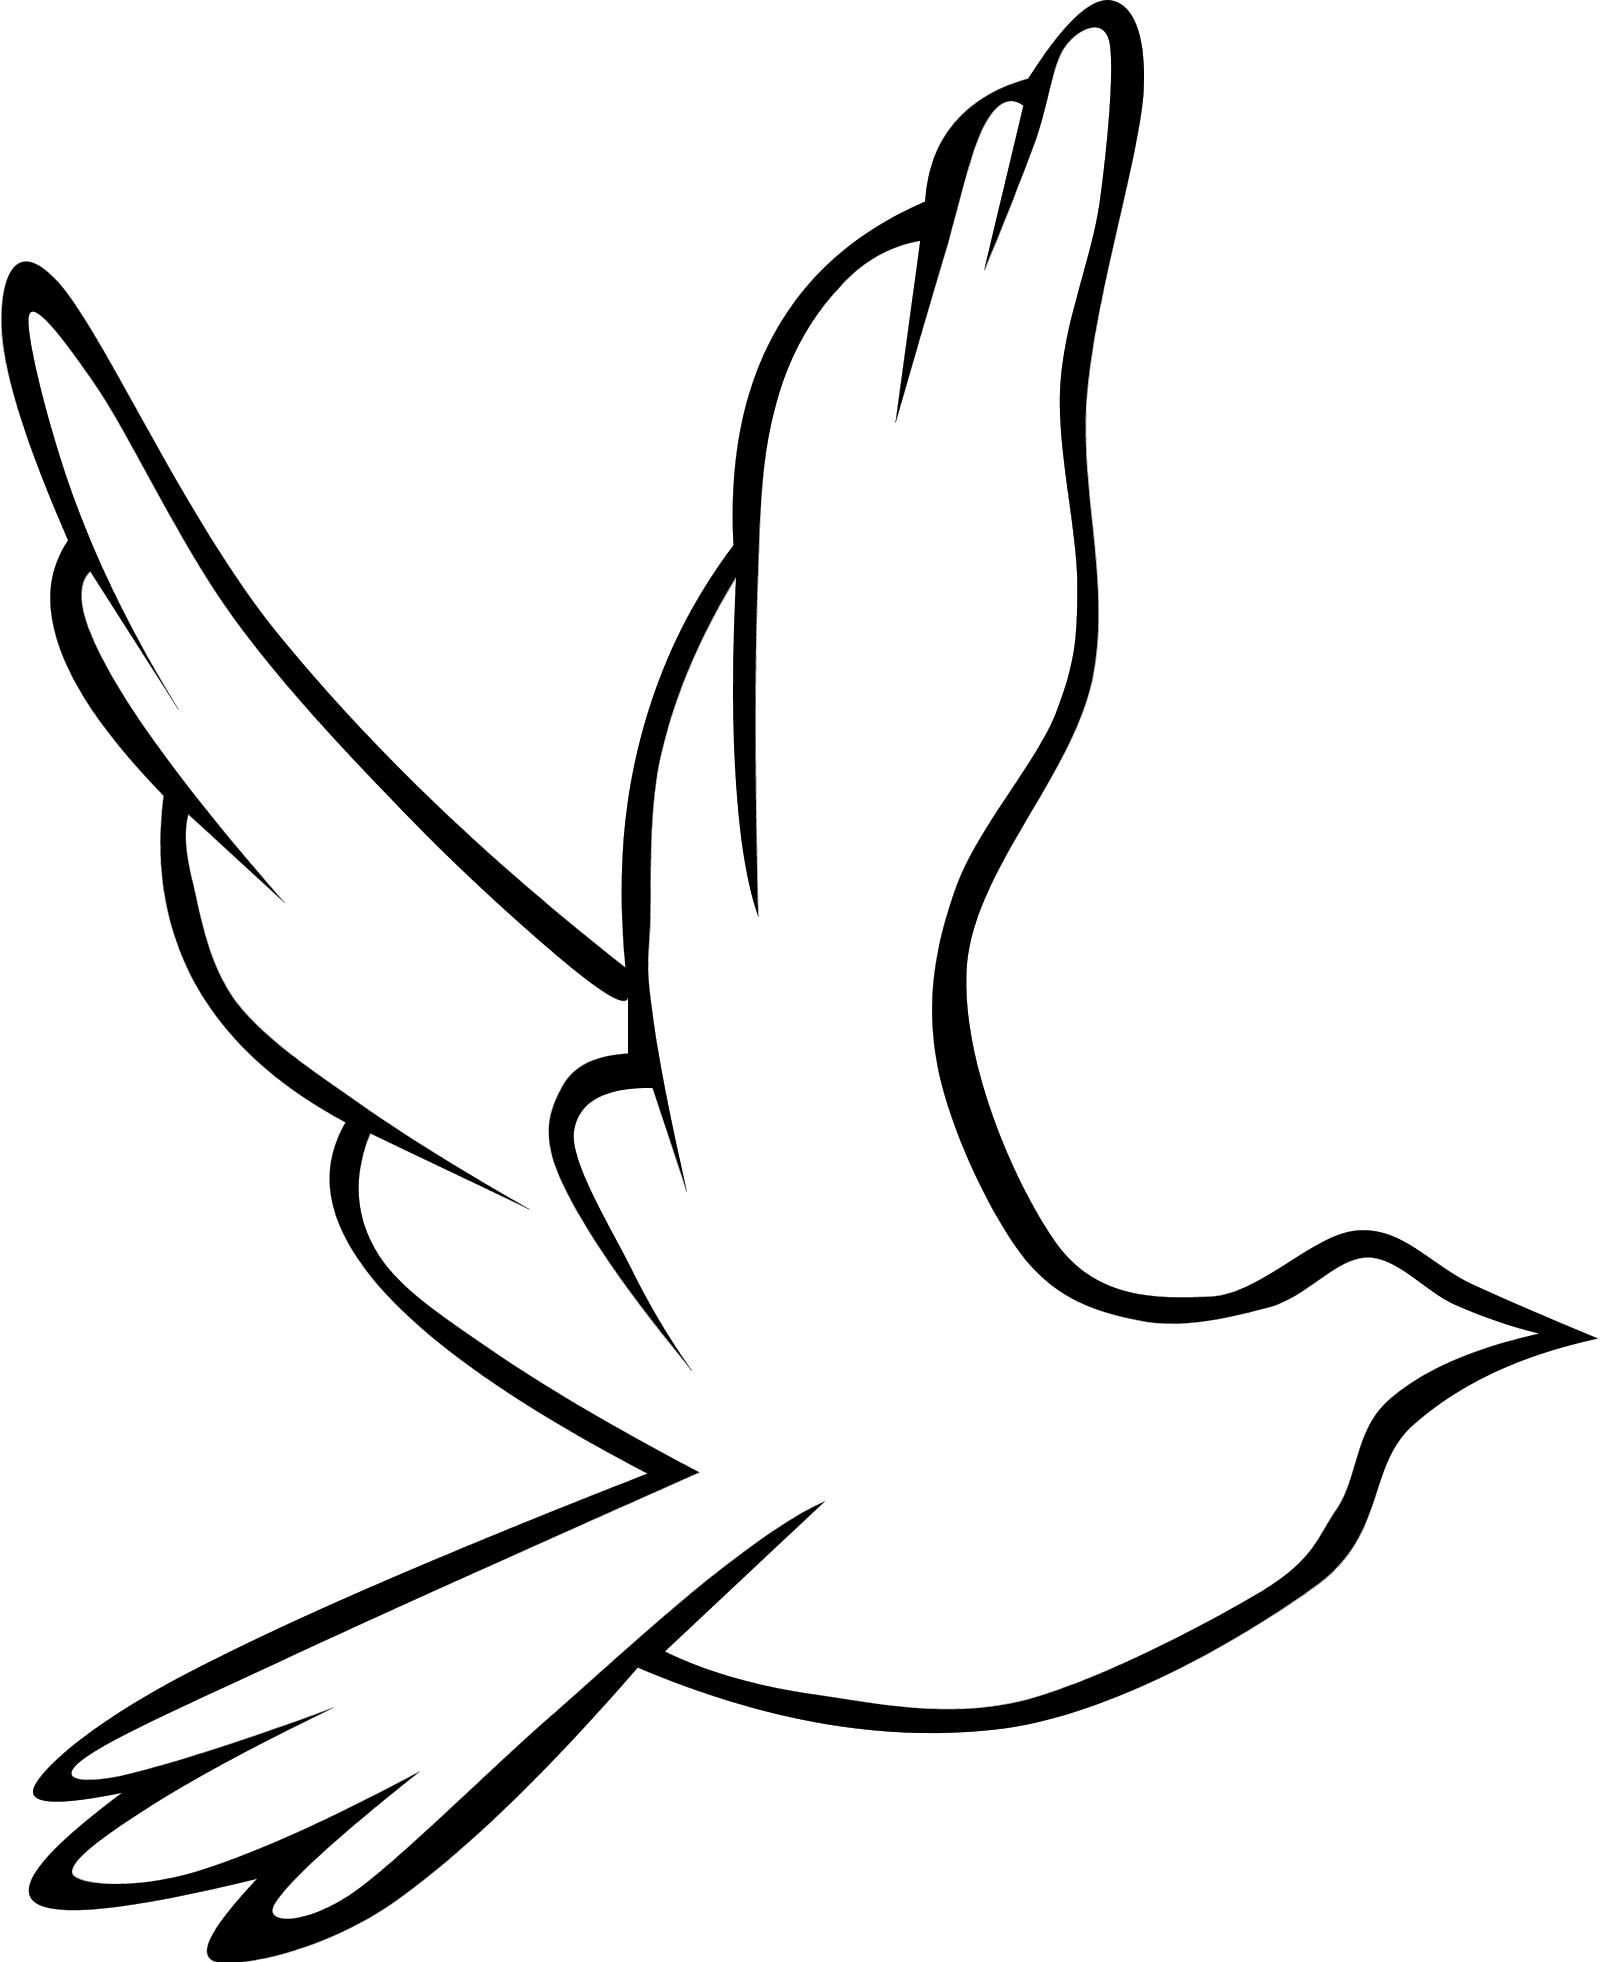 Turtle dove clipart free picture black and white download Turtle Dove Drawing at PaintingValley.com | Explore ... picture black and white download